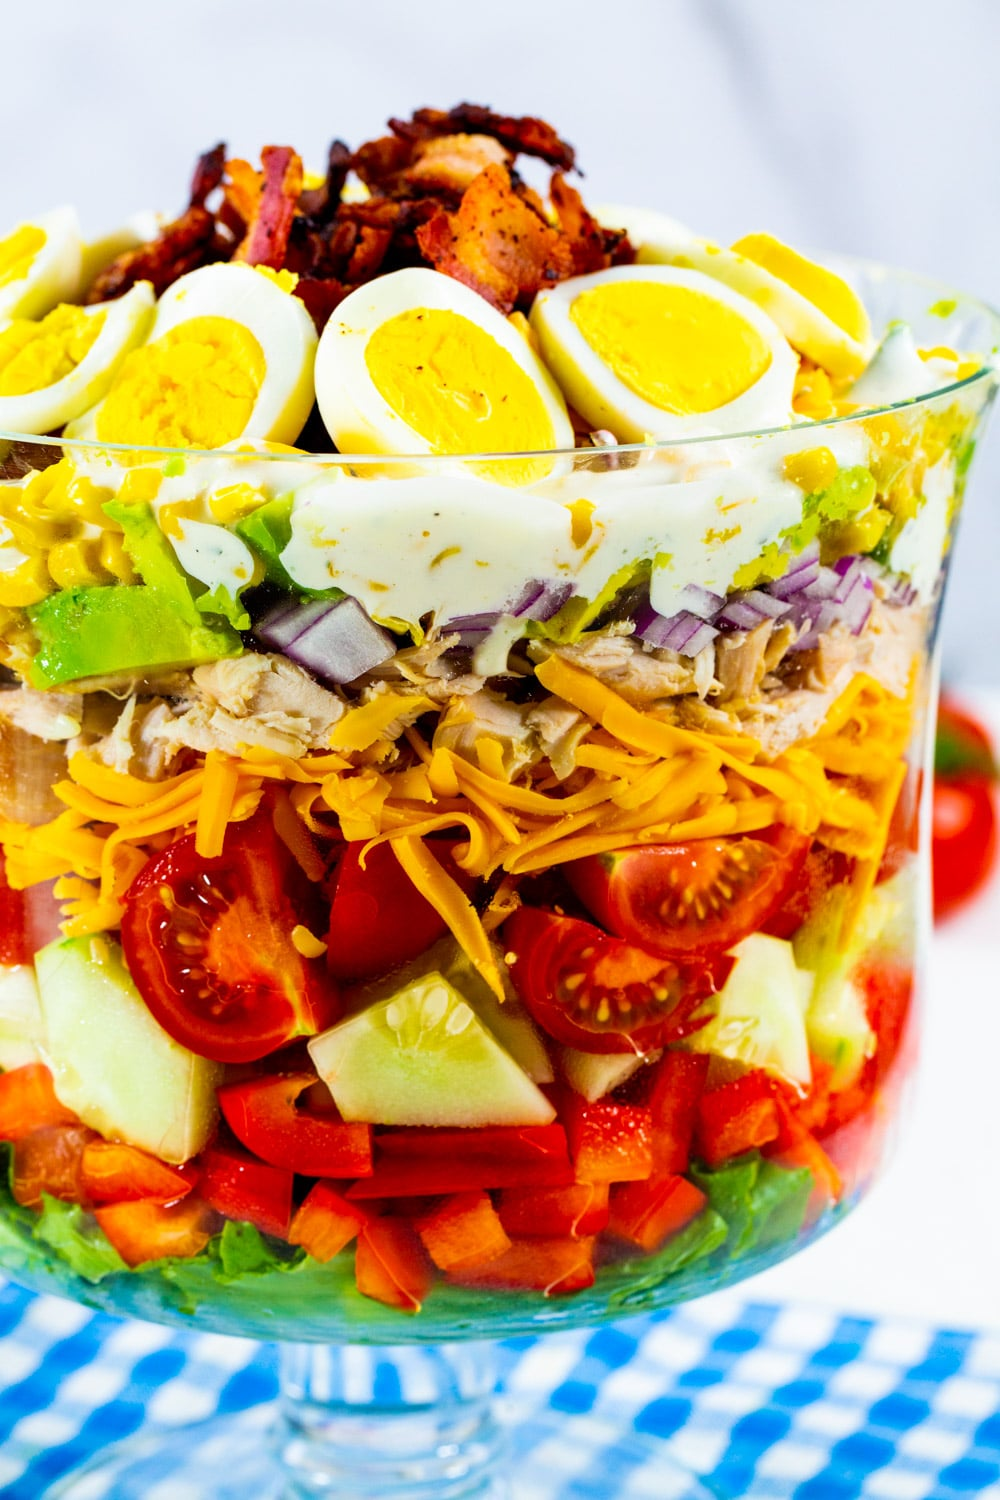 Layer Salad topped with hard-boiled egg and bacon in a trifle dish.